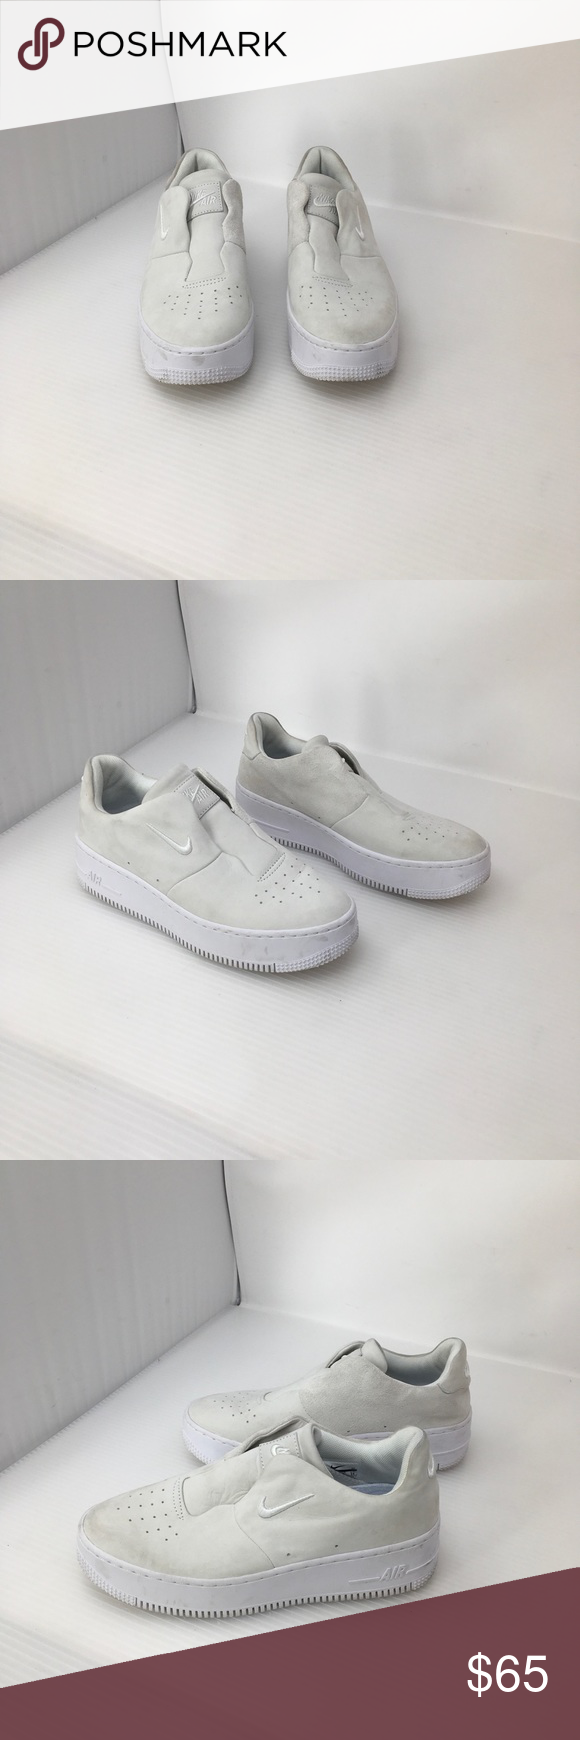 Nike Air Force 1 Laceless Sneakers US 7